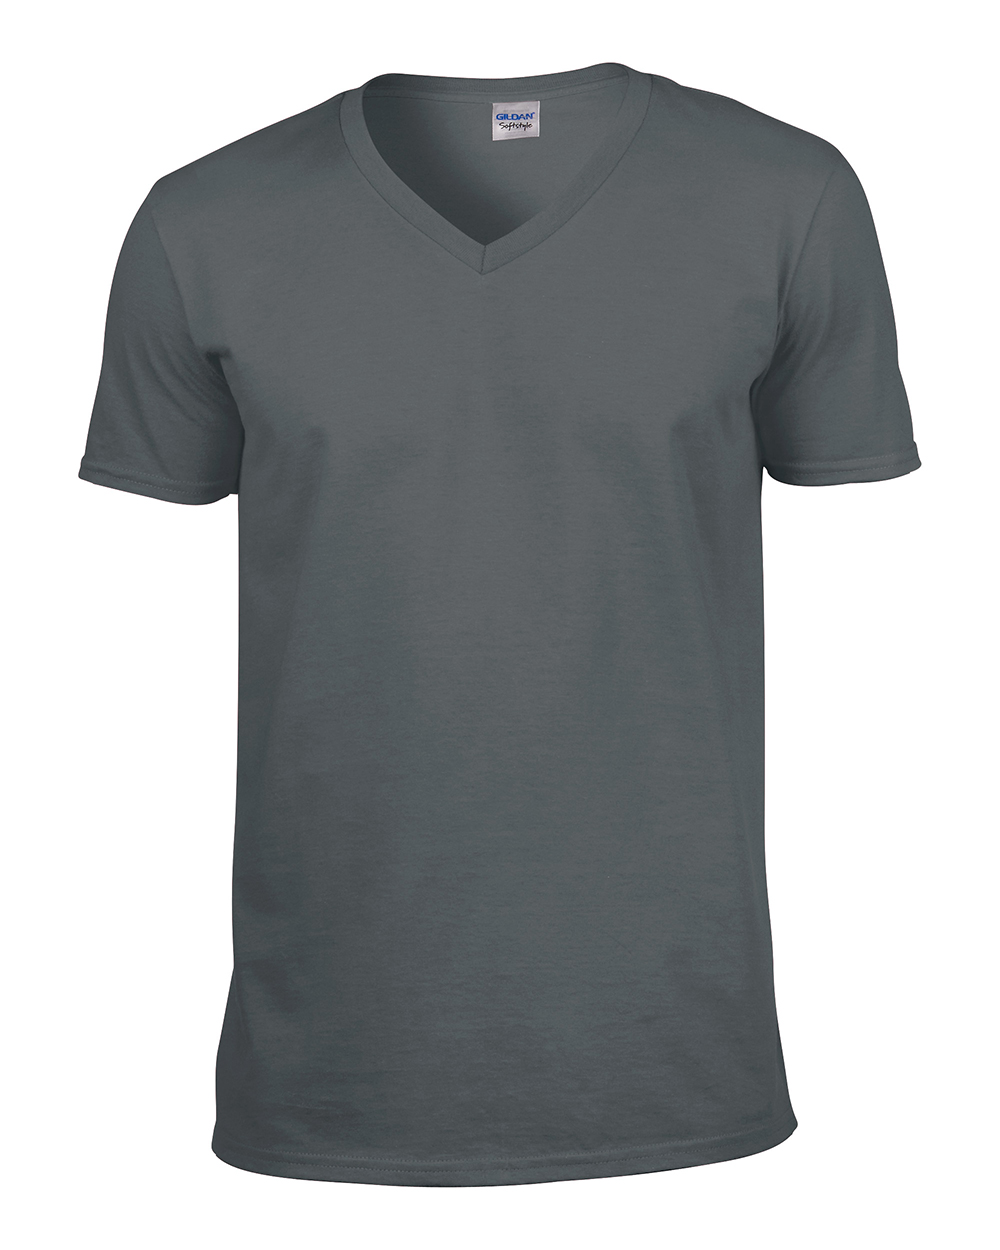 Gildan softstyle men 39 s v neck cotton t shirt short sleeve for Gildan v neck t shirts for men